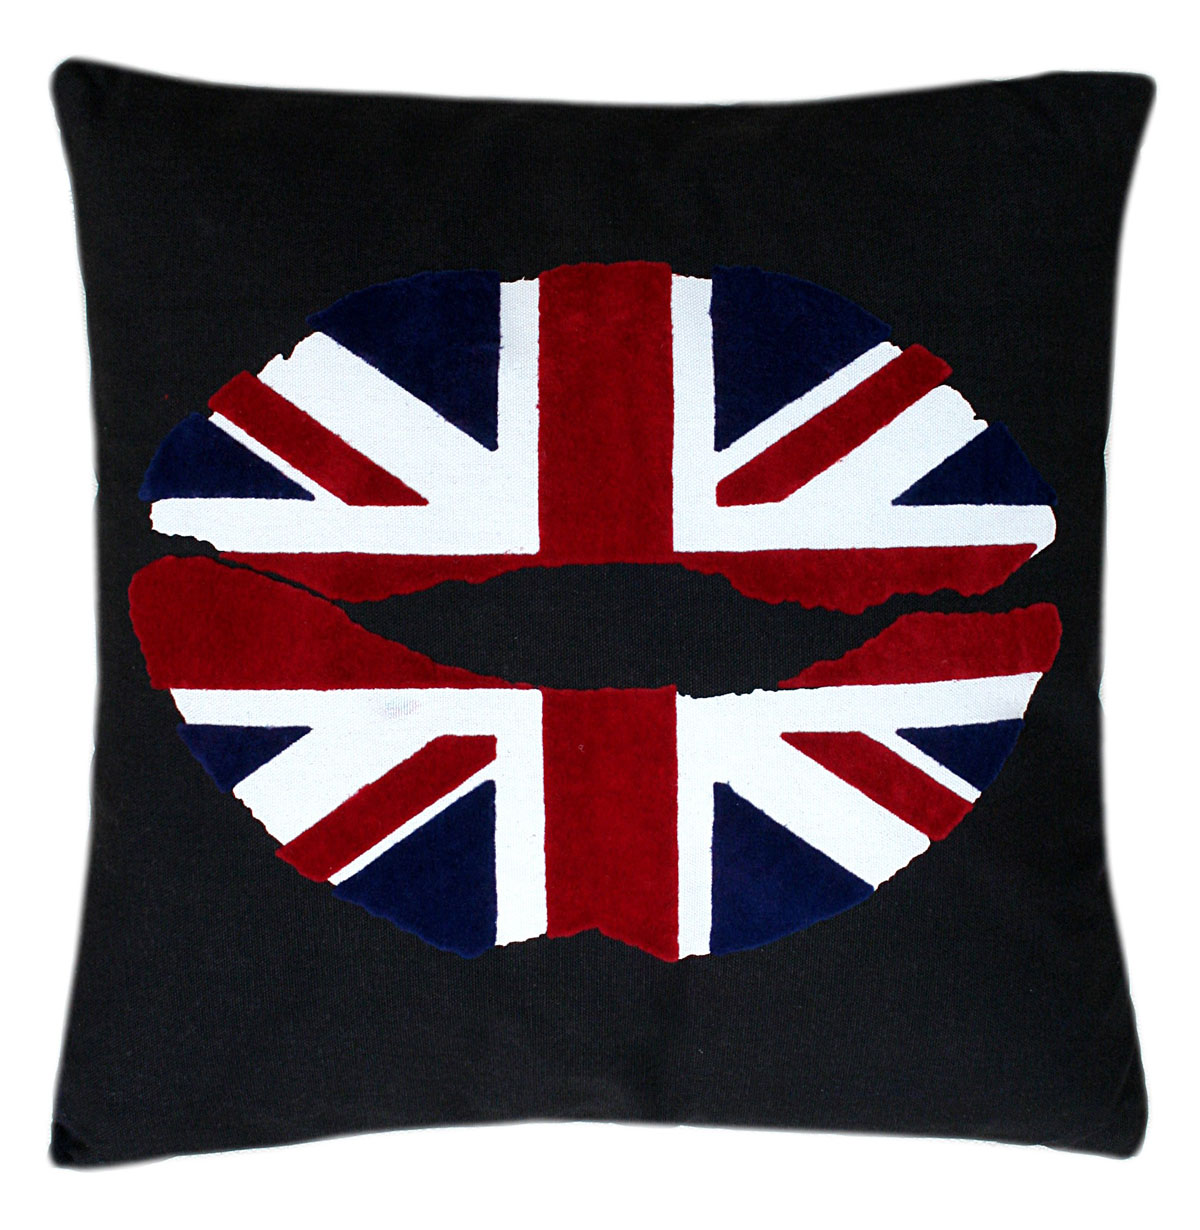 UK LIPS CUSHION